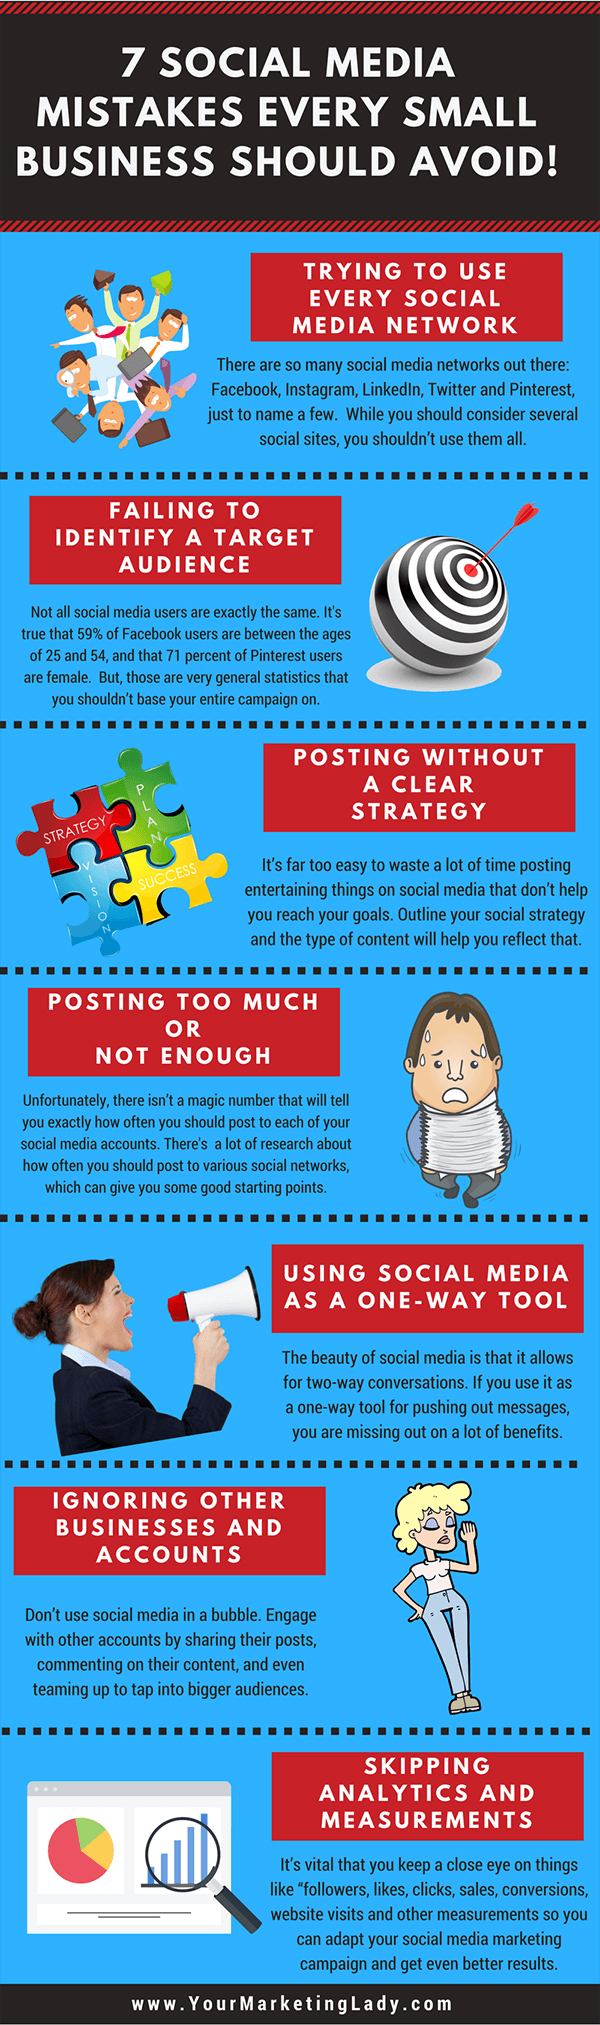 Infographic lists some common social media marketing mistakes